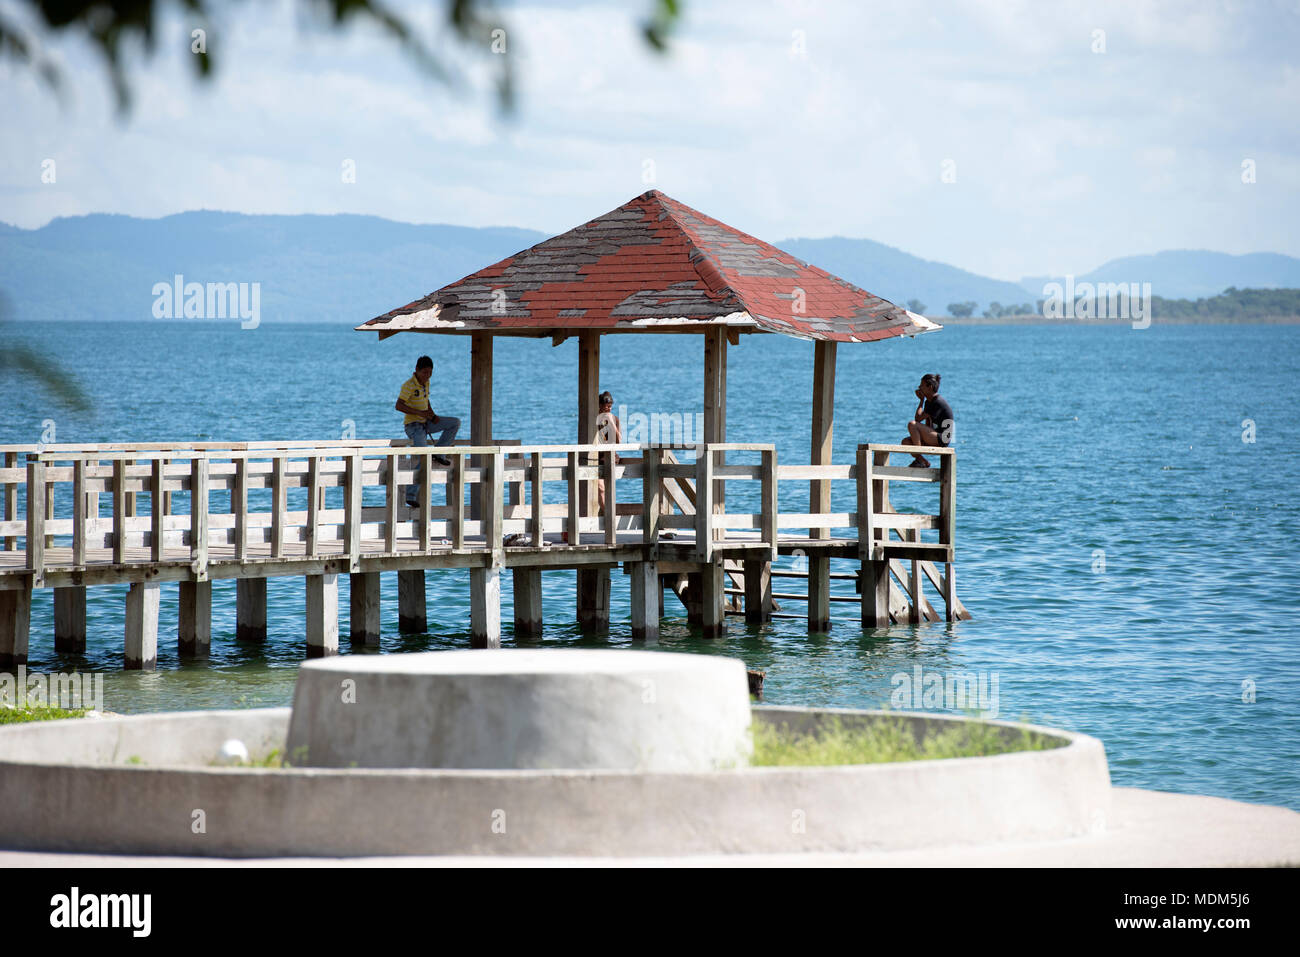 Young Itza people, descendants of the ancient Maya, relax on a sunny afternoon by Lake Peten in northern Guatemala. - Stock Image